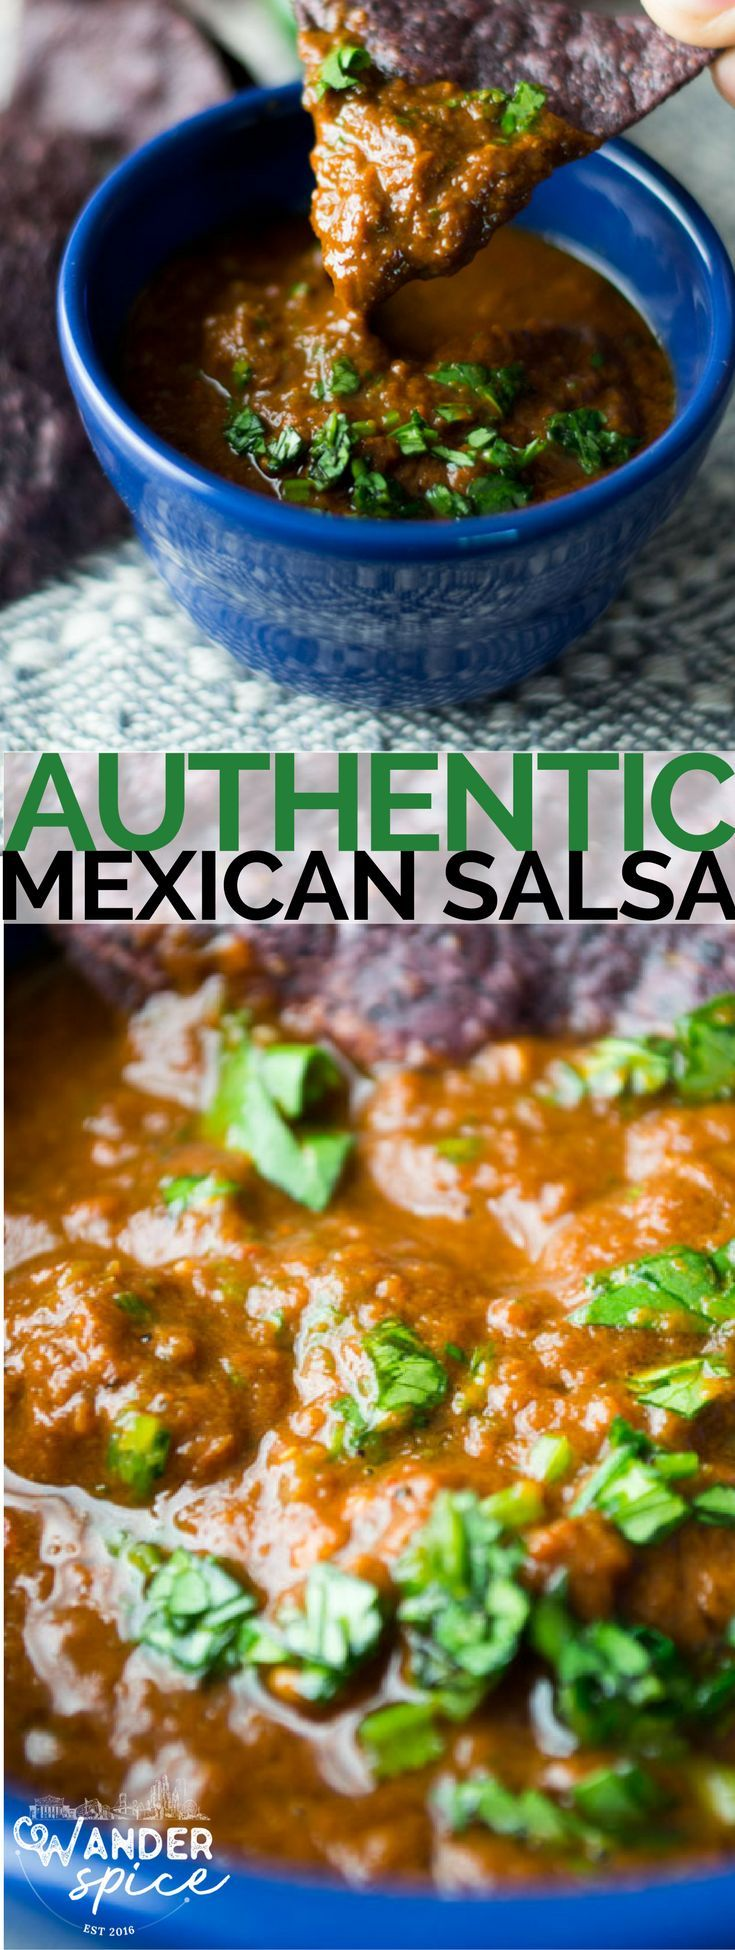 Authentic Mexican Salsa. Poblano, Serrano, Chipotle and Jalapeno grilled and charred – like a rebel biker gang circling your taste buds. Mexican | Salsa